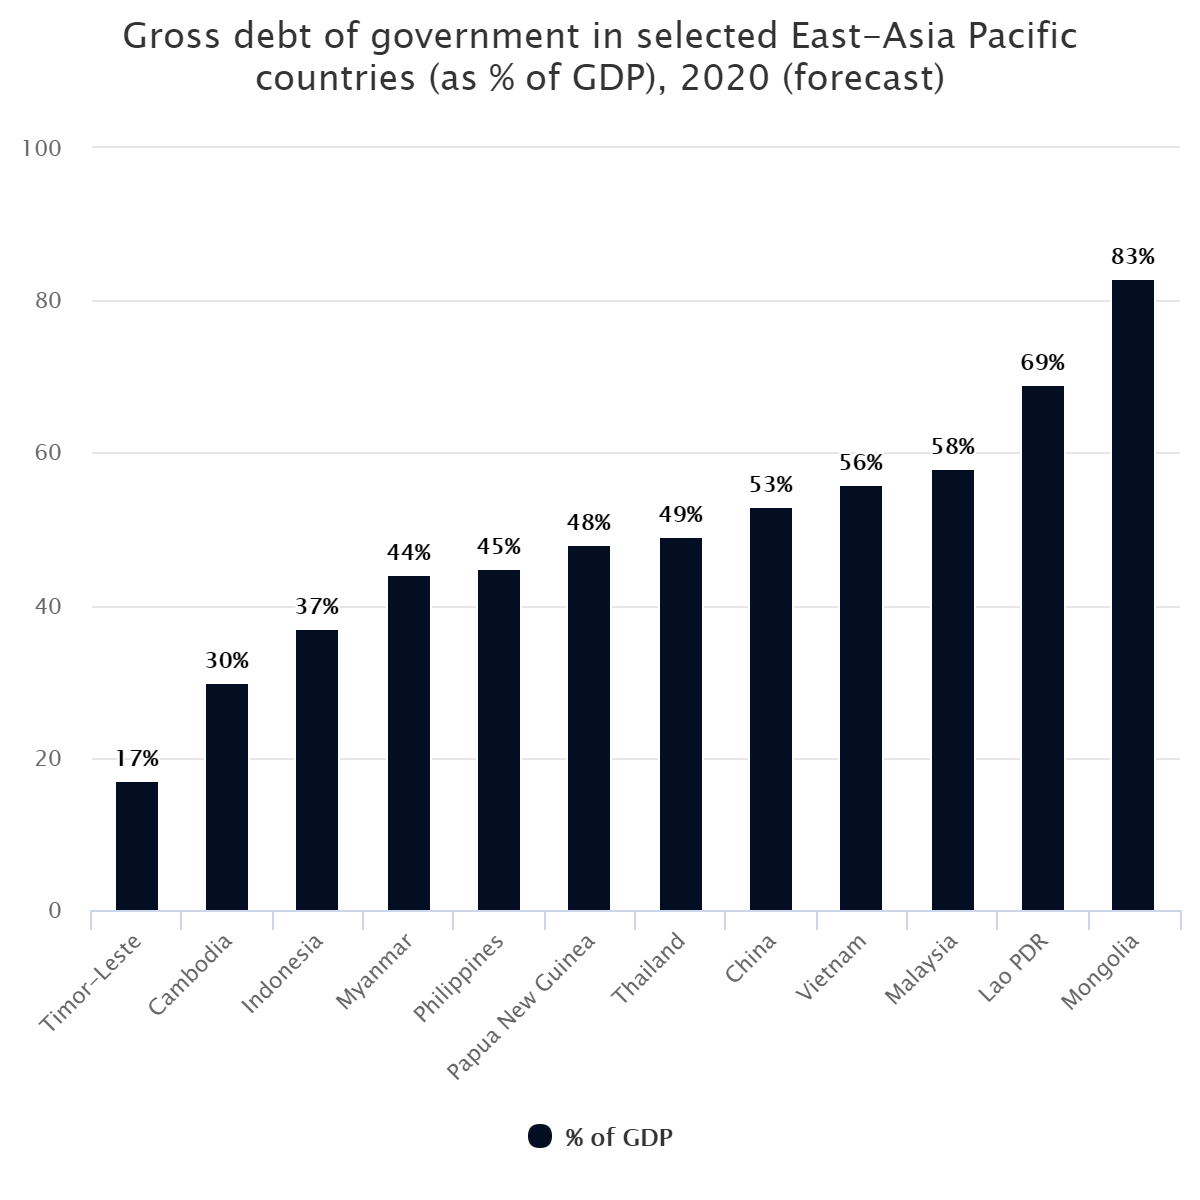 Gross debt of government in selected East-Asia Pacific countries (as % of GDP), 2020 (forecast)